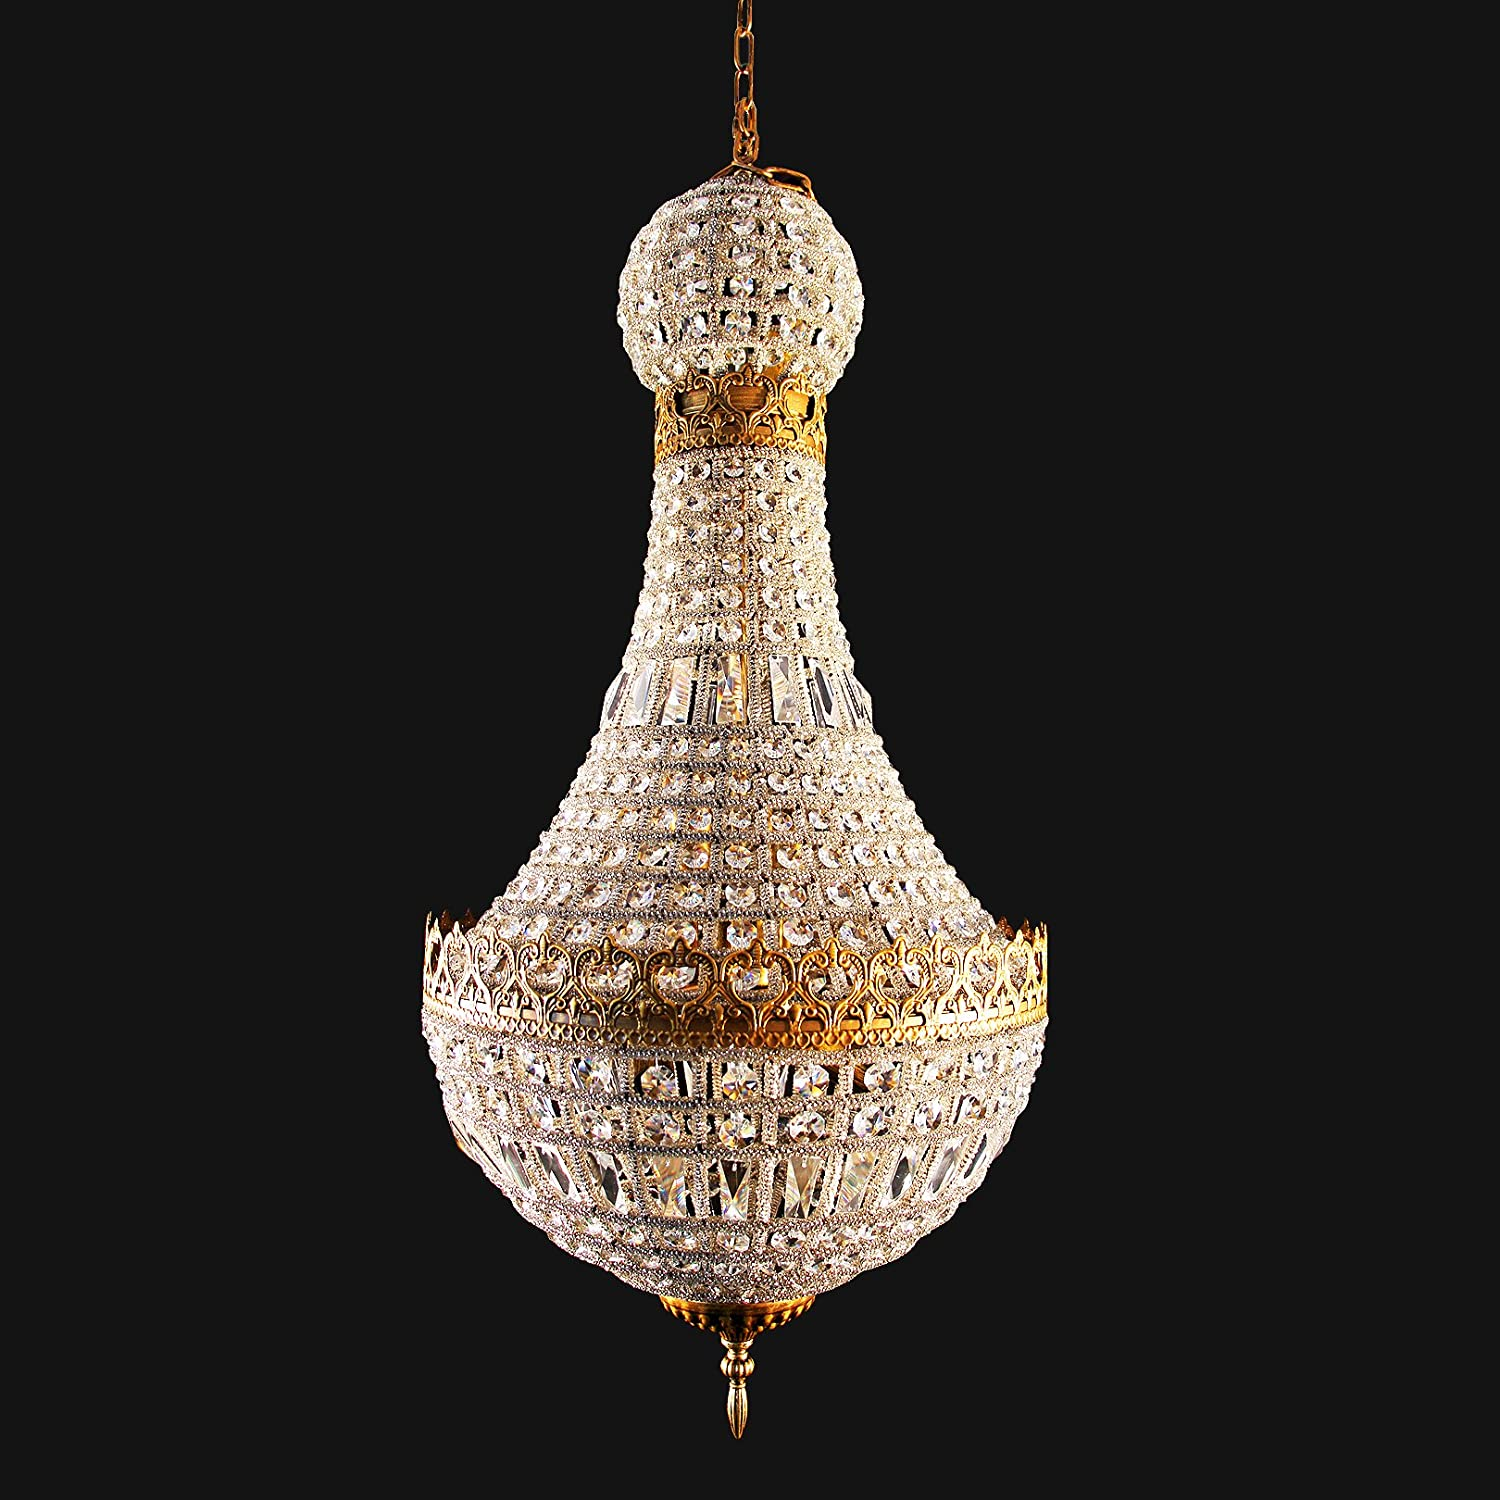 Large foyer entryway french empire crystal chandelier chandeliers lighting fixture for pendant ceiling lamp for dining room entryway living roomhigh